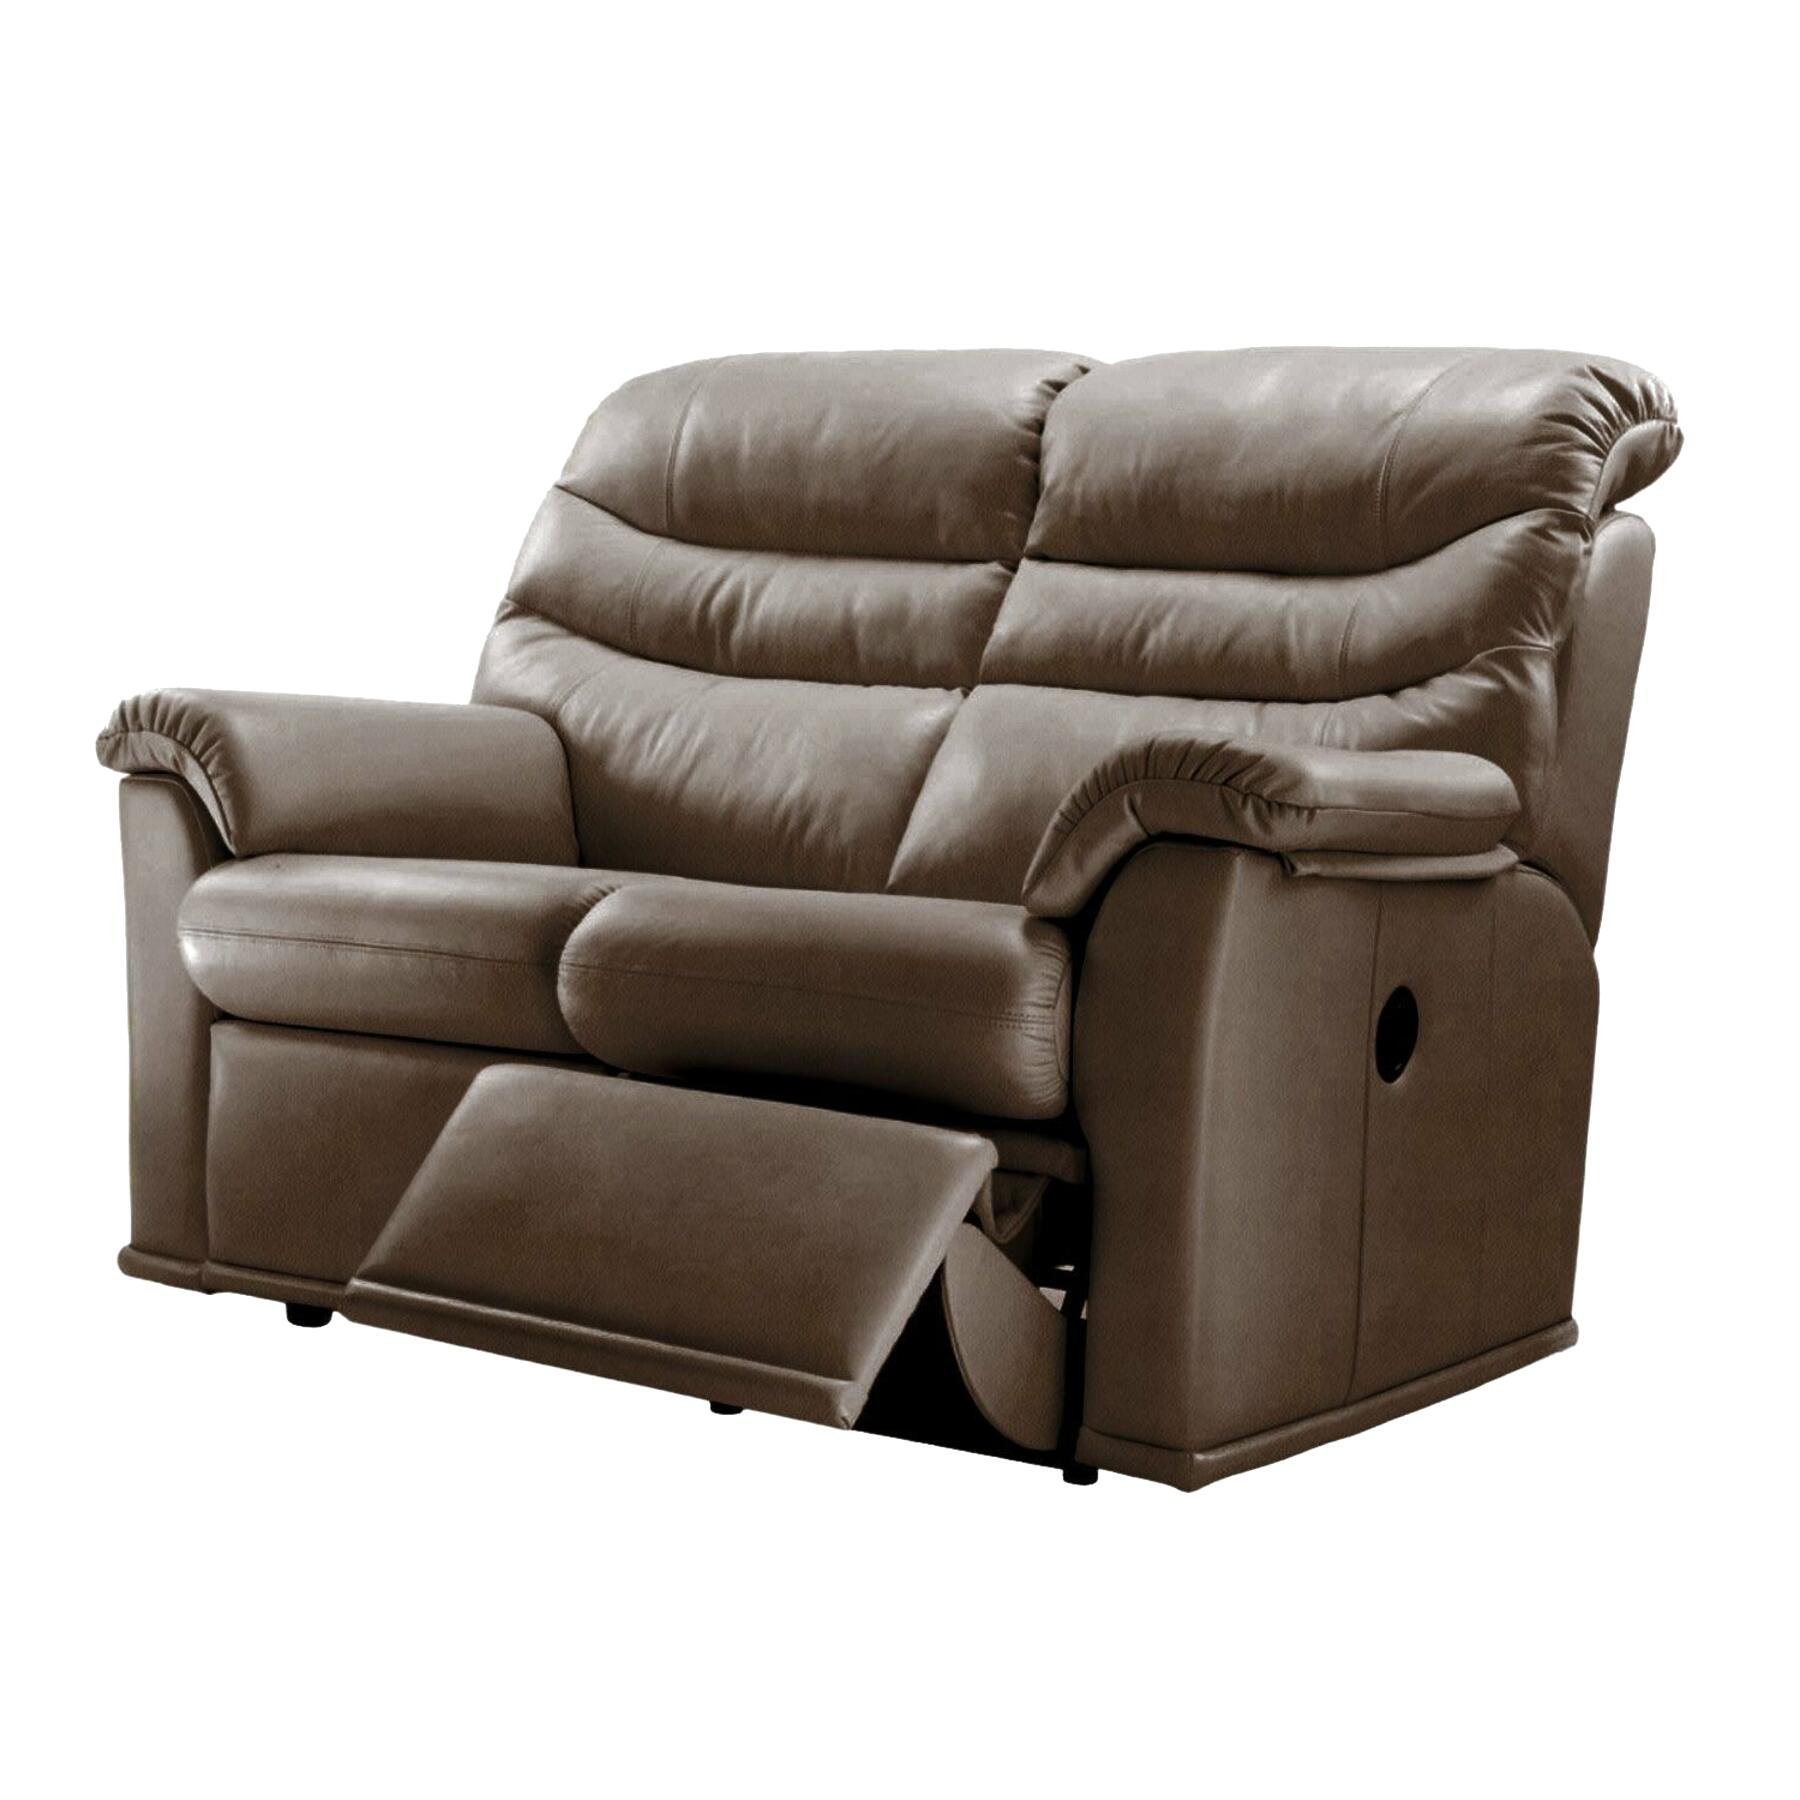 g plan recliner leather for sale